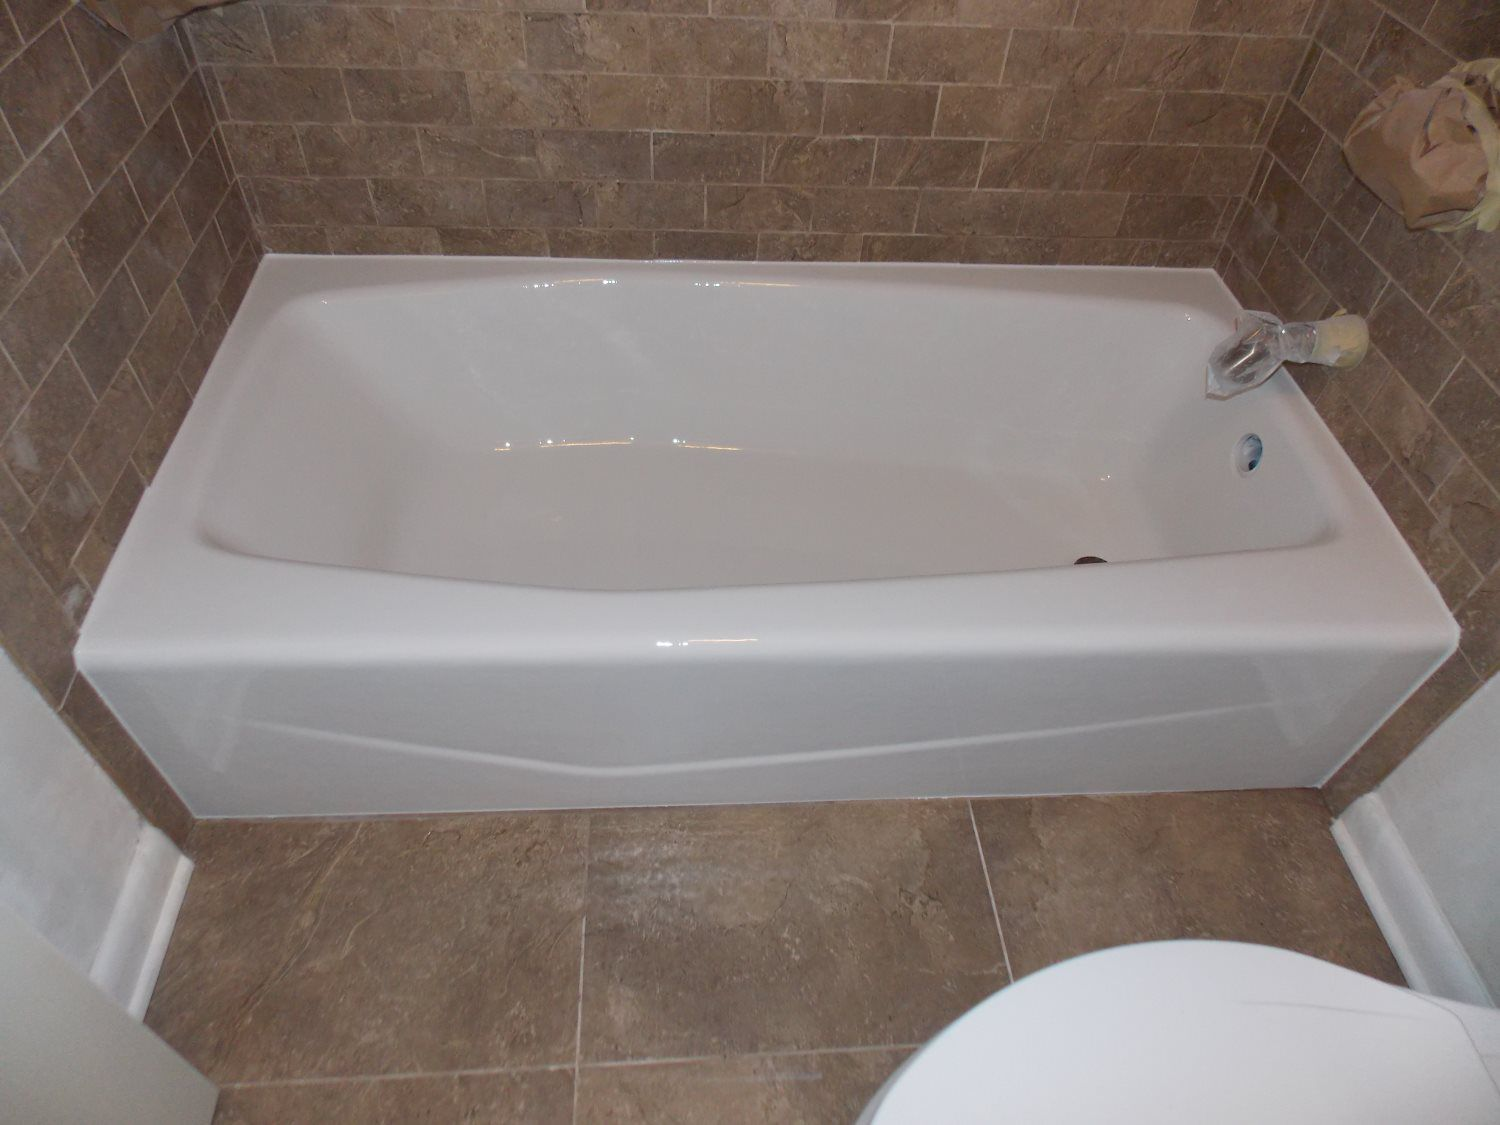 Absolute Tub and Tile Restoration - Absolute Tub & Tile ...